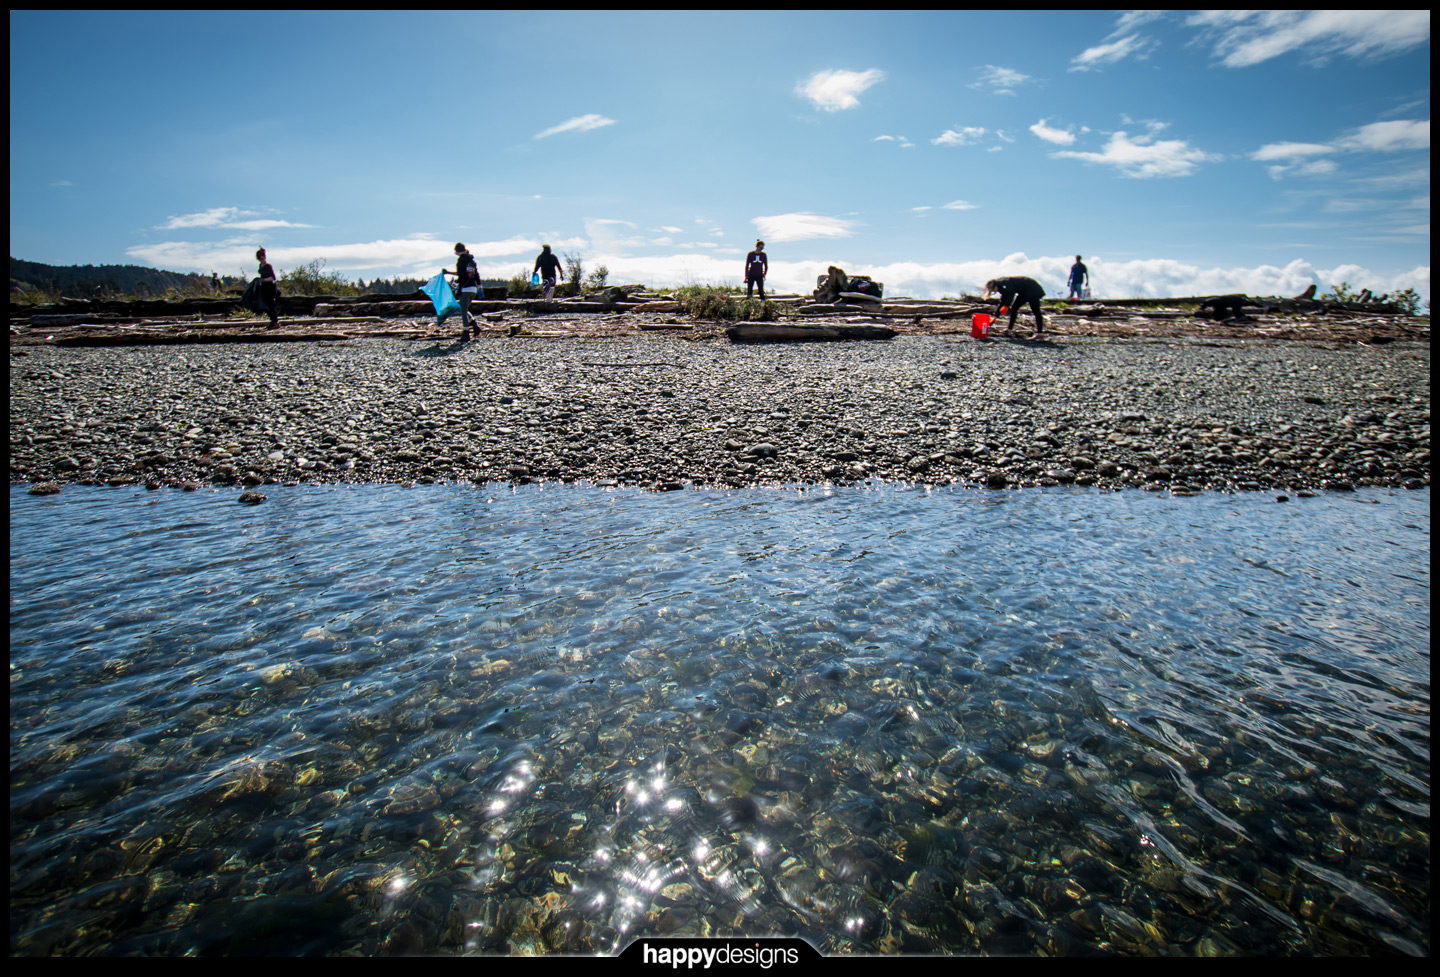 20150512 - Surfrider beach cleanup (Whiffin Spit)